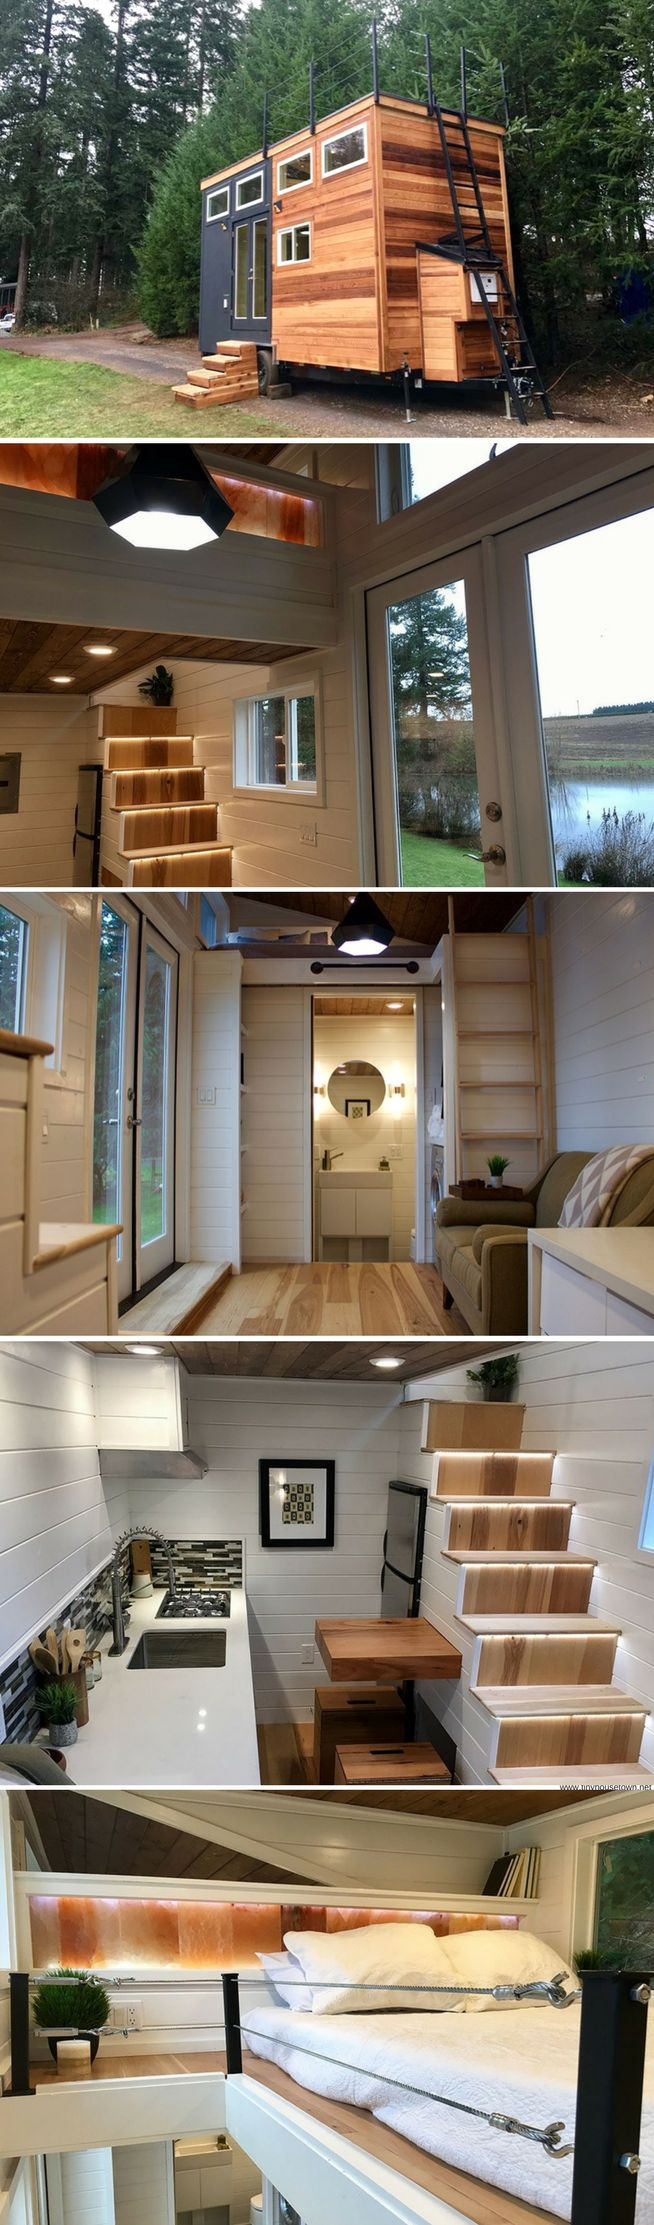 The Tiny House of Zen from Tiny Heirloom